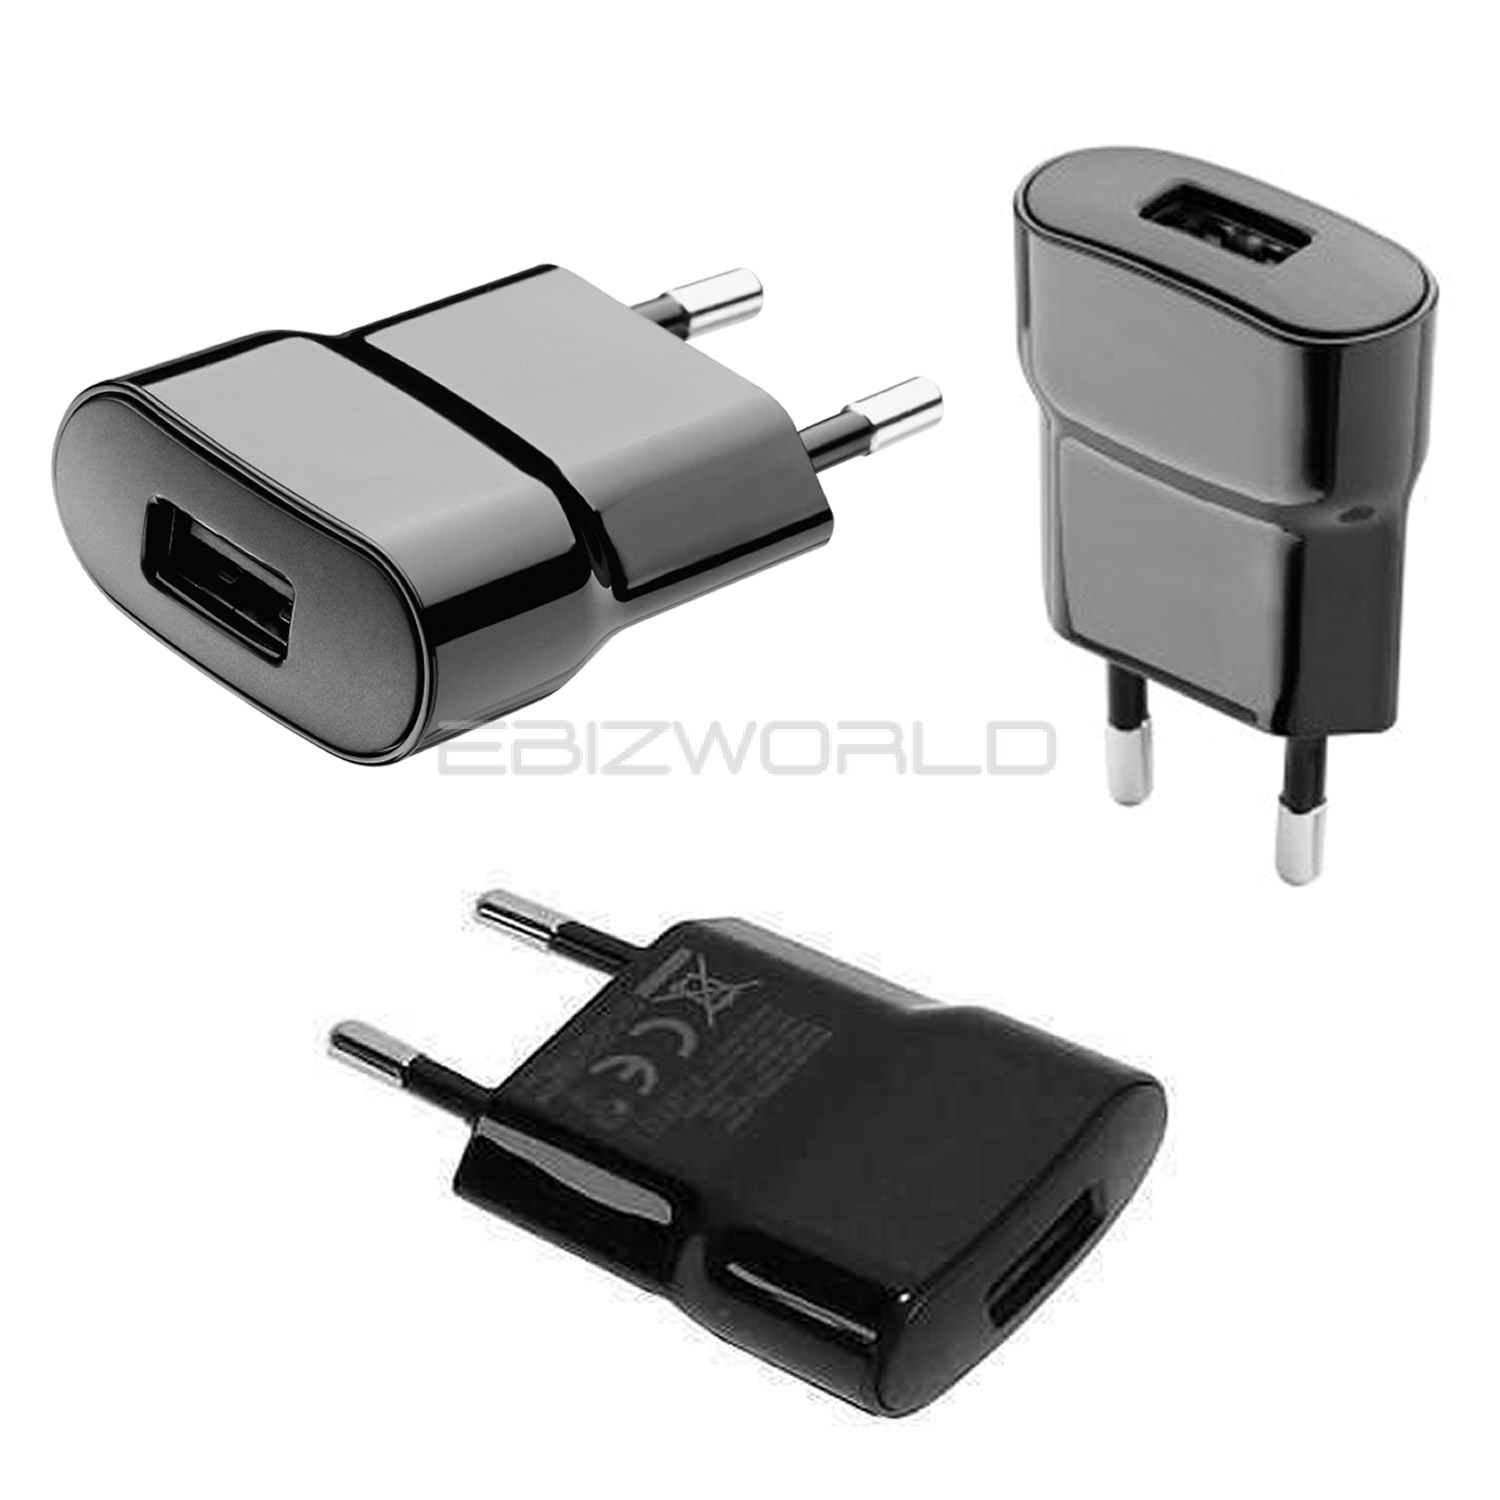 Genuine-BlackBerry-Travel-EU-2-Pin-Mains-USB-Plug-Power-Wall-Charger-EUrope